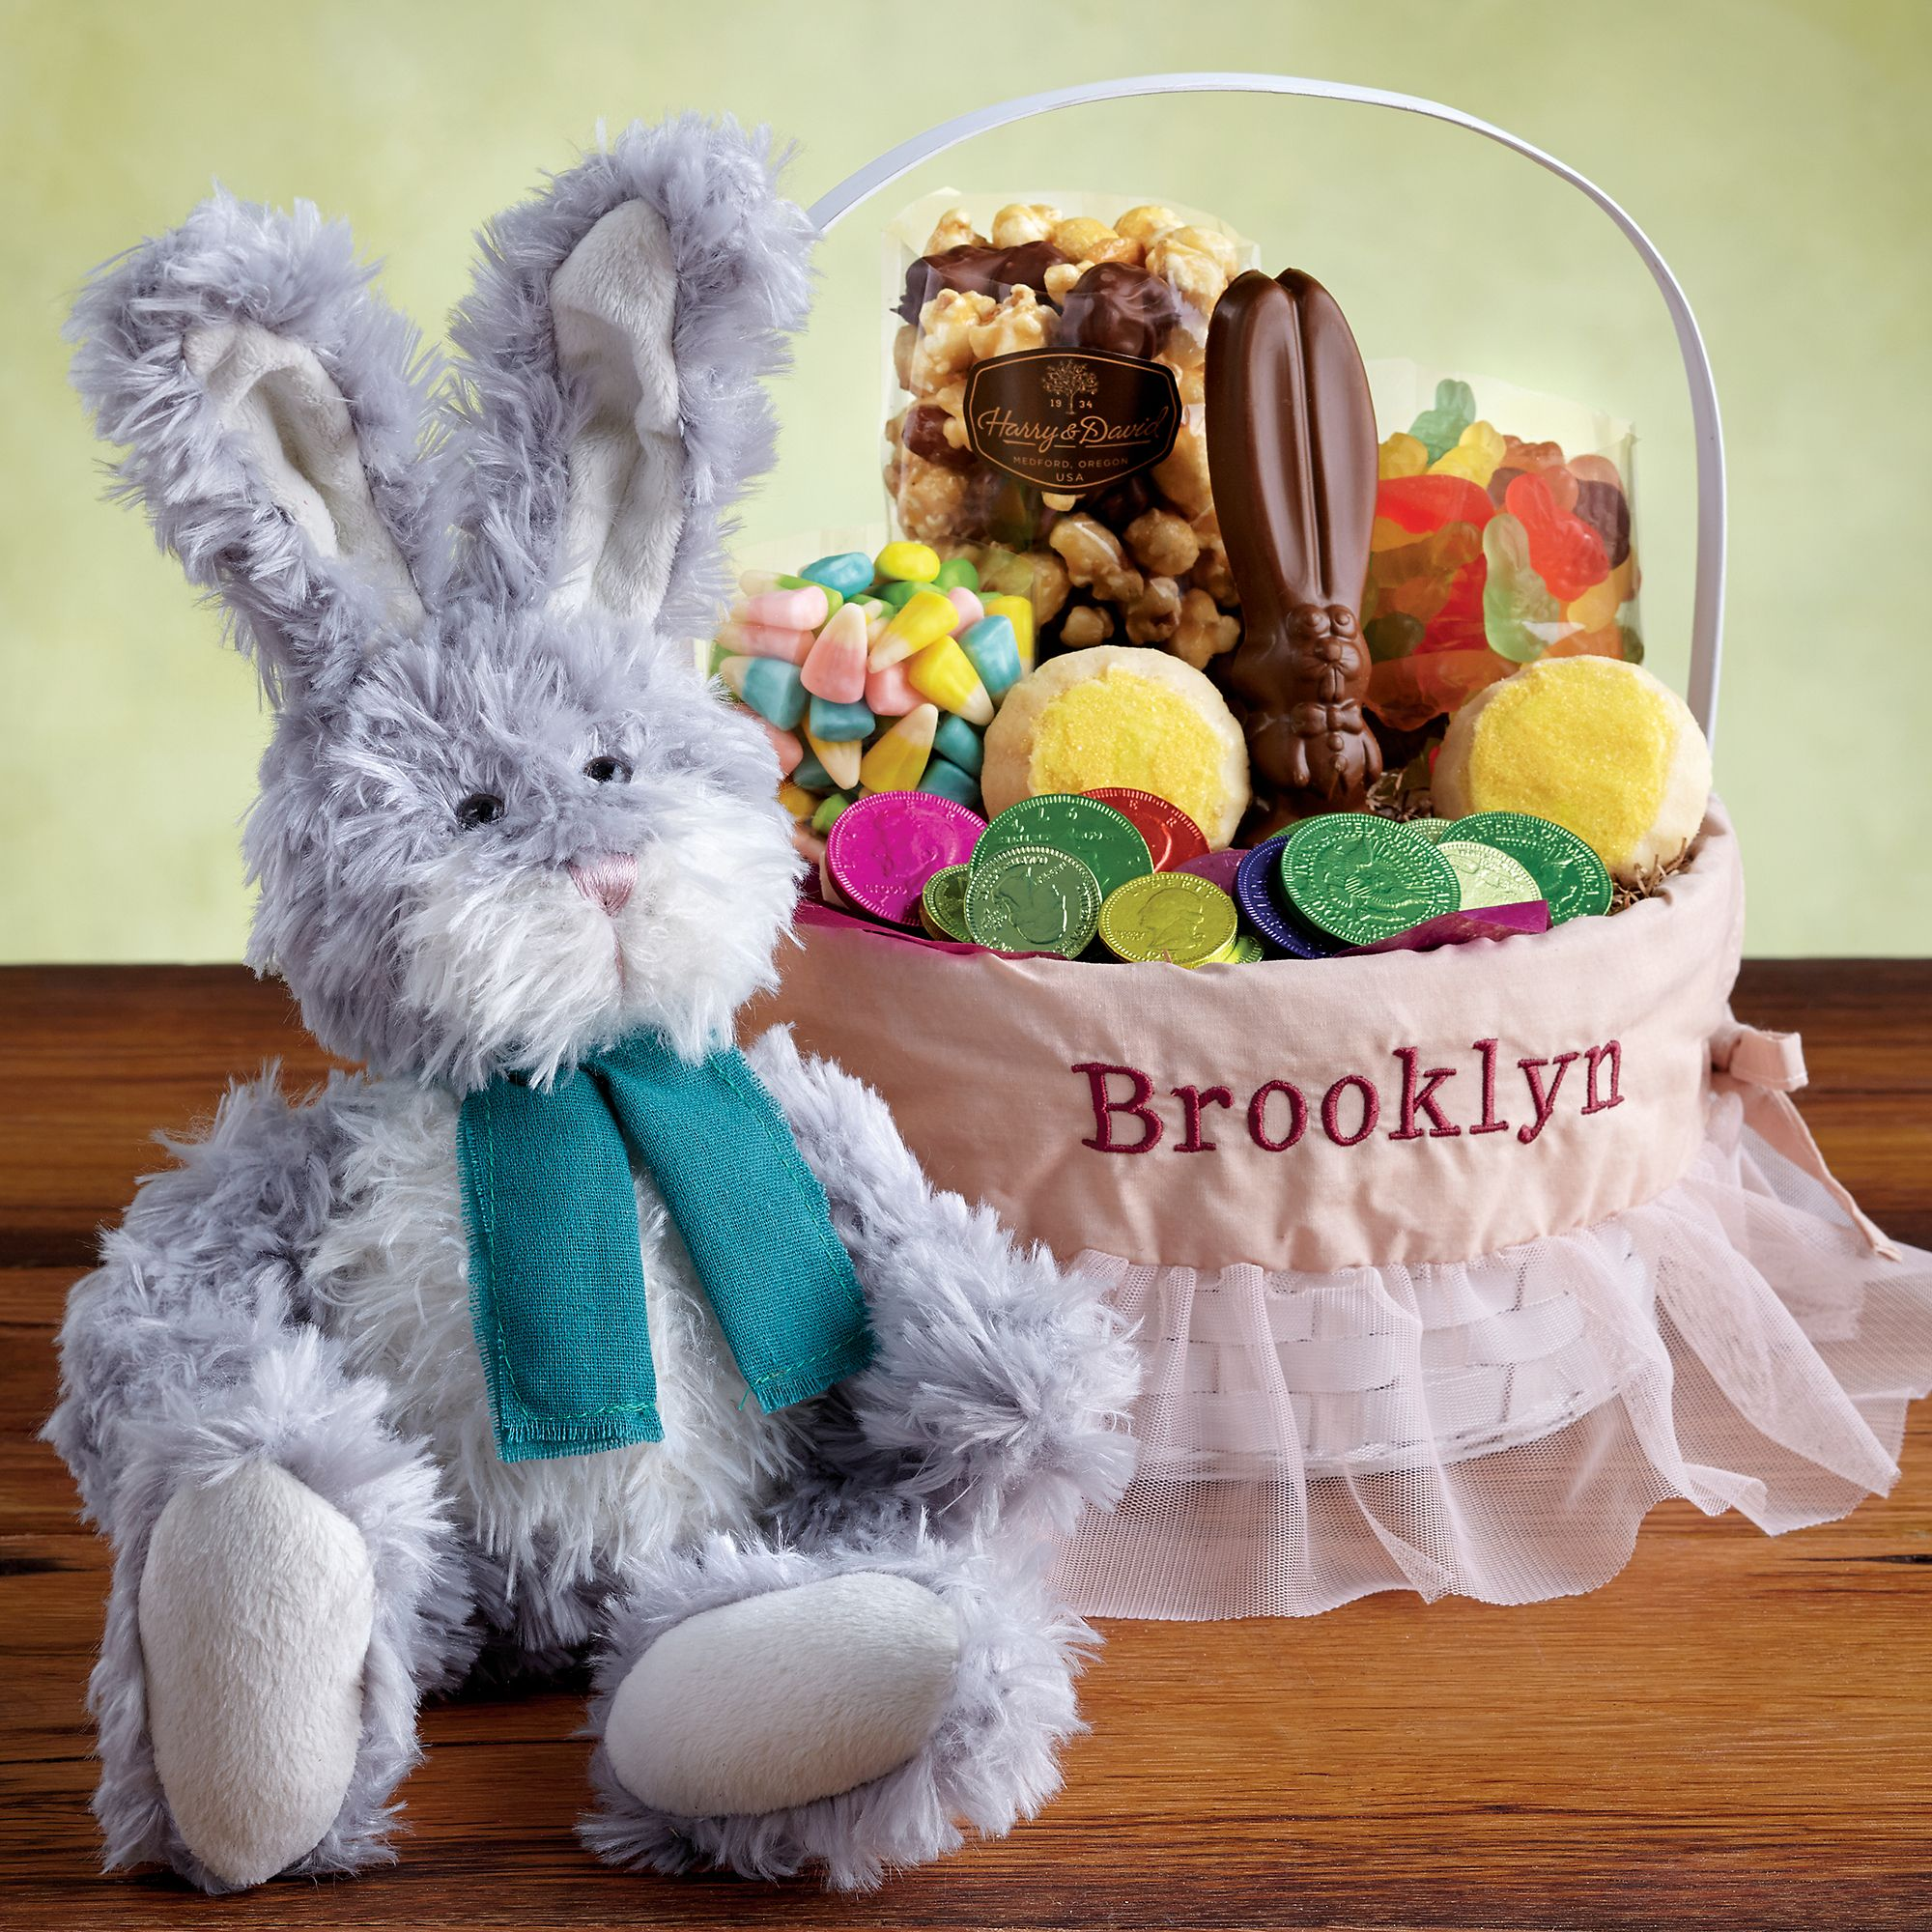 Adorable Easter Gift Basket Idea With Very Cute White Purple Bunny Doll And  Delicious Easter